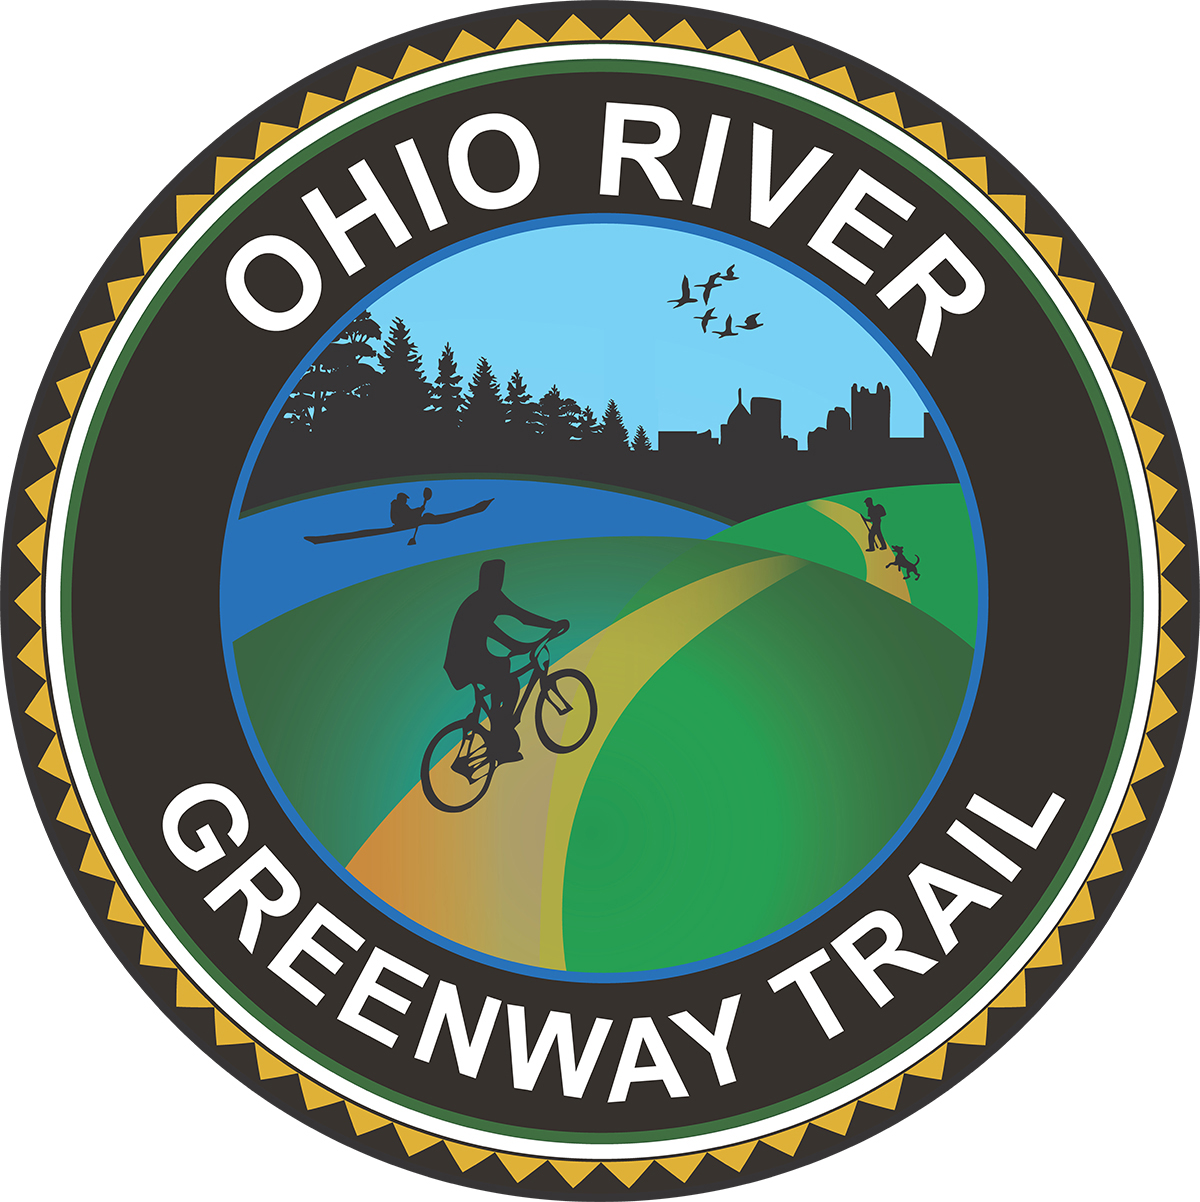 Ohio River Greenway Trail Logo